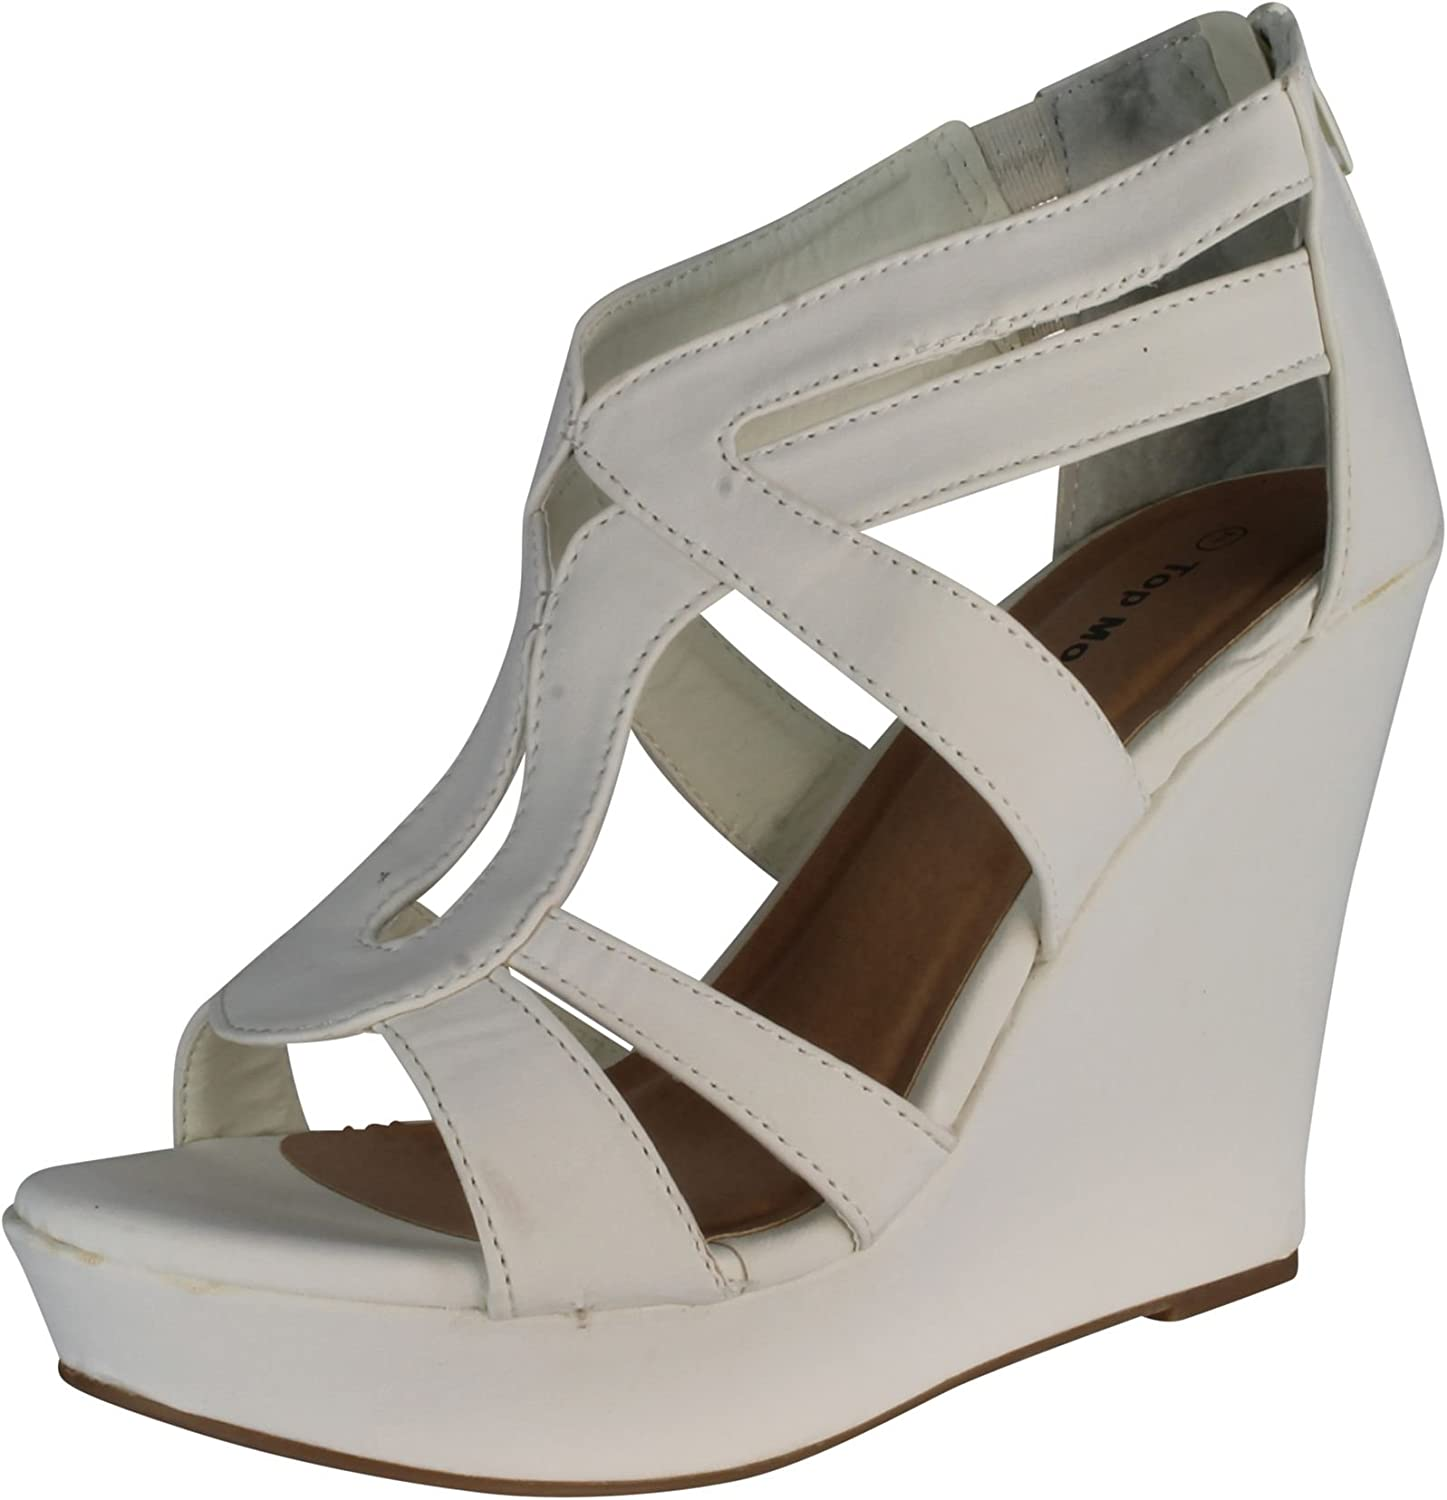 Lindy 03 Strappy Open Toe Finally resale Max 56% OFF start Platform Wedge